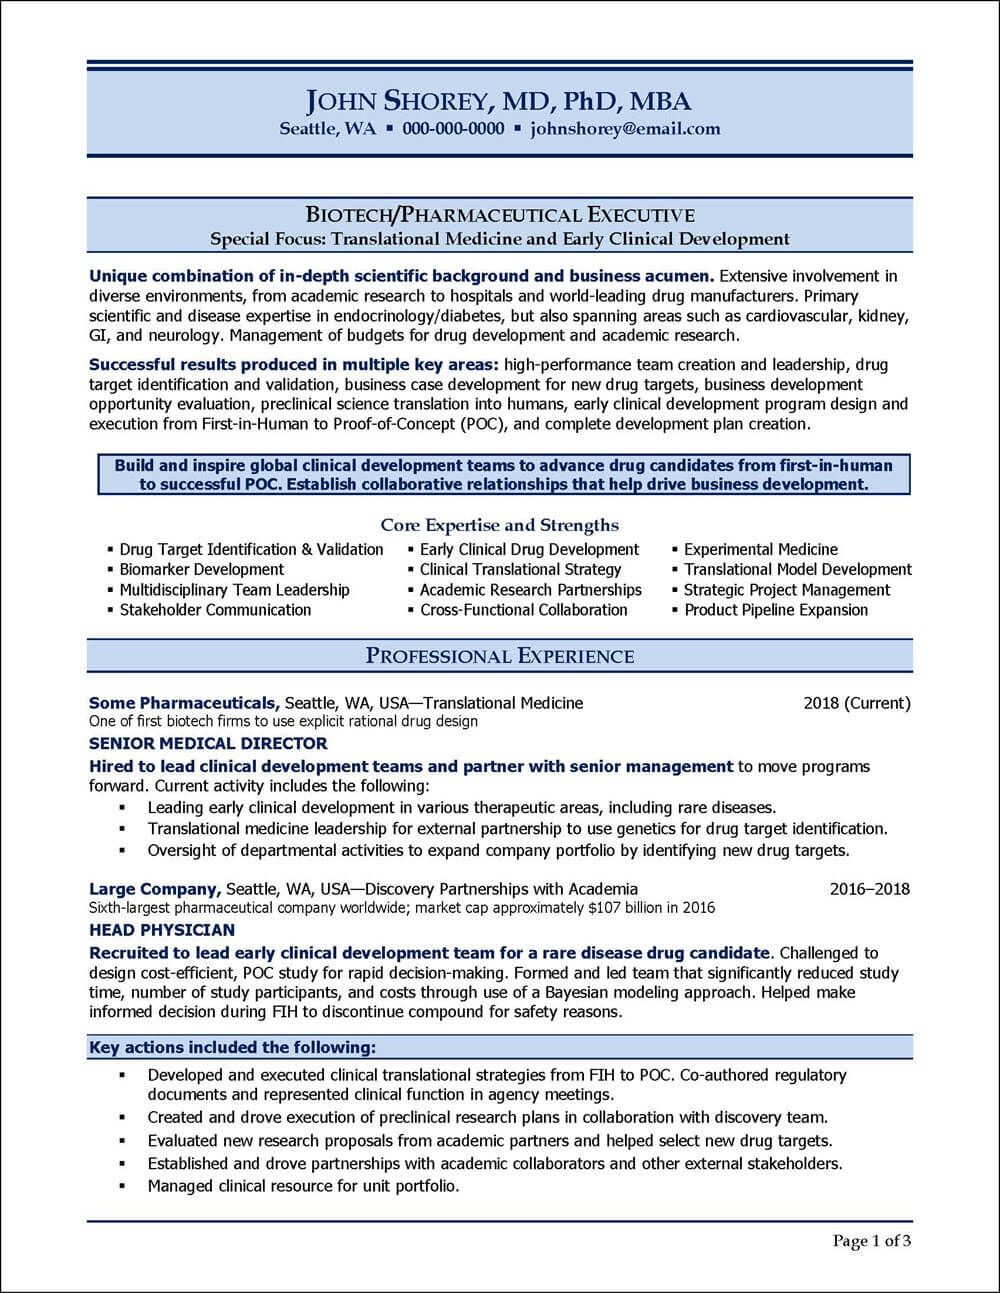 Example Resume For A Biotechnology Pharmaceutical Industry Executive Resume Examples Professional Resume Samples Resume